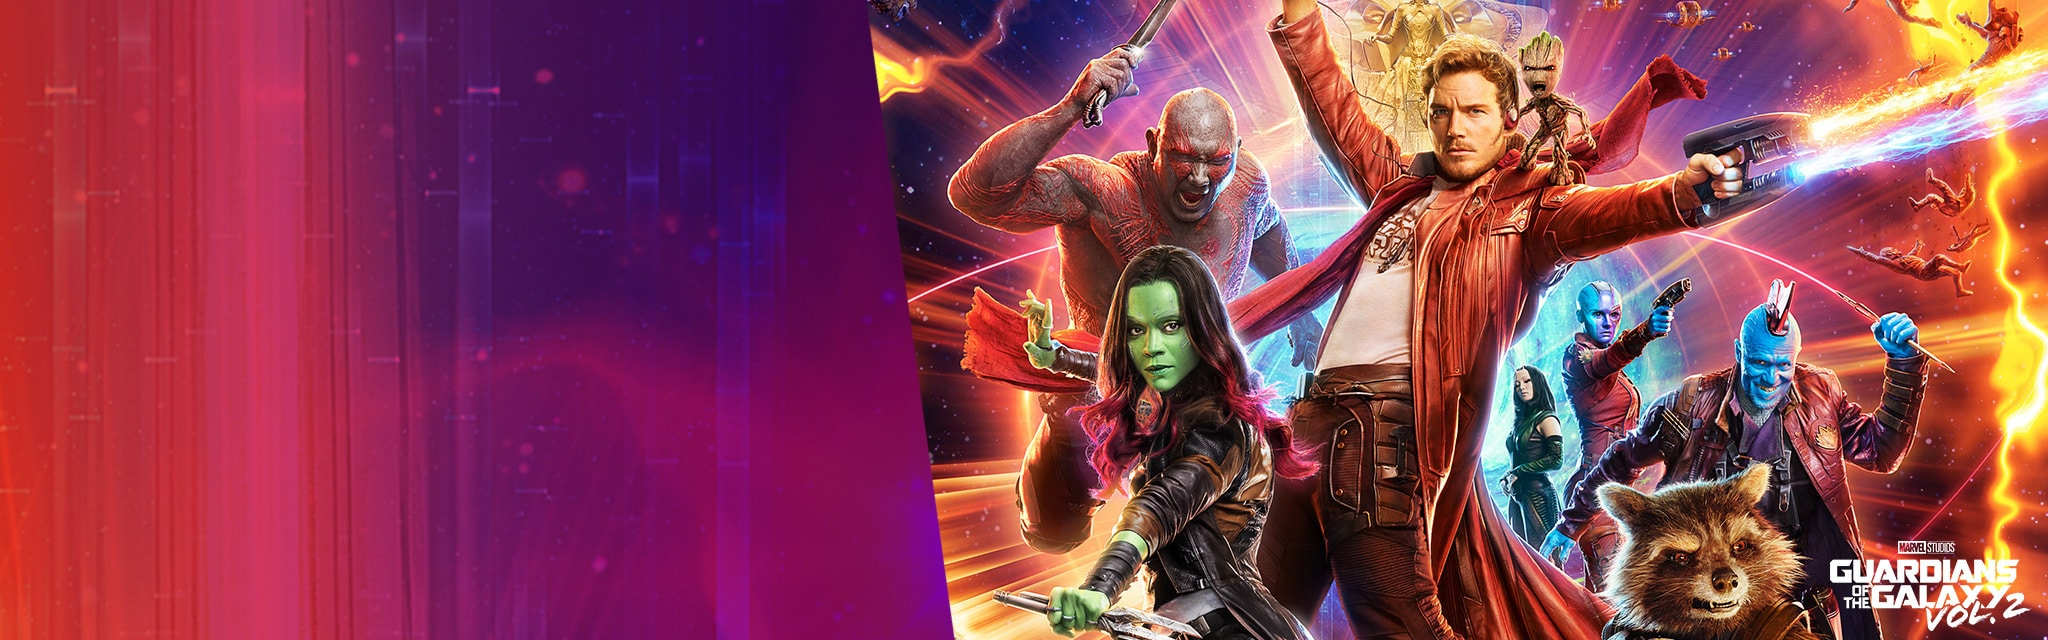 "Guardians of the Galaxy ""In Cinemas"" Hero - PH, ID"